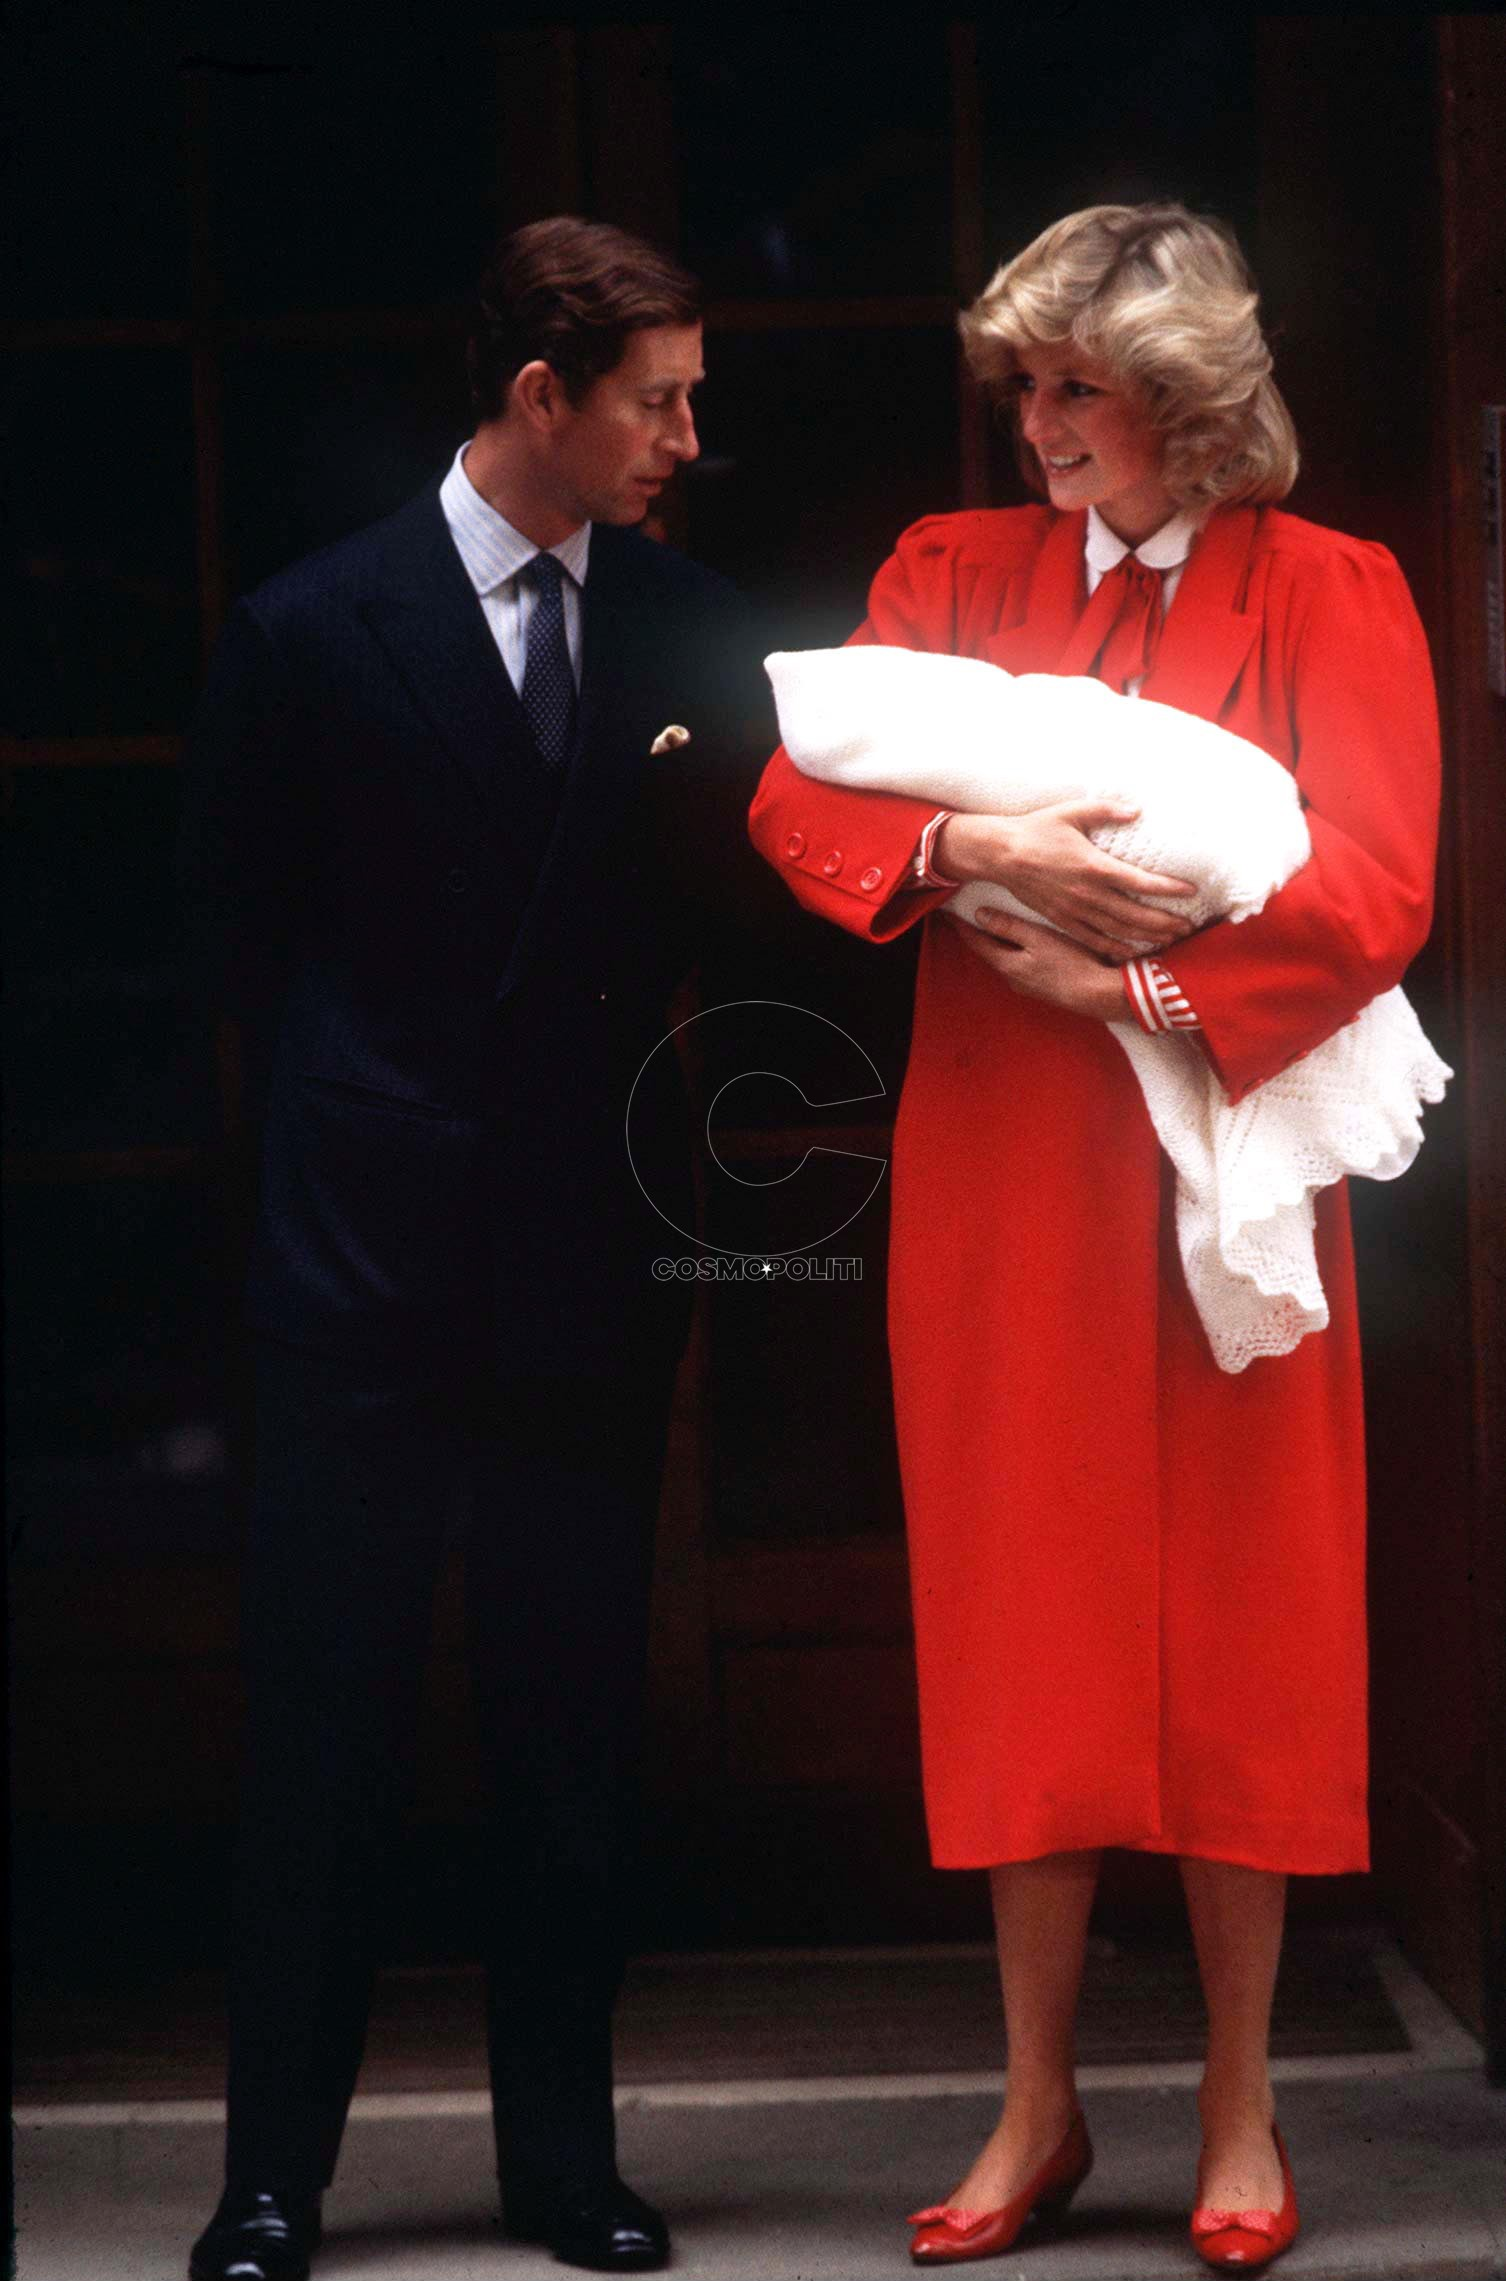 LONDON, UNITED KINGDOM - SEPTEMBER 17: Princess Diana Holding Baby Prince Harry As She And Prince Charles Leave St. Marys Hospital In London. (Photo by Tim Graham/Getty Images)